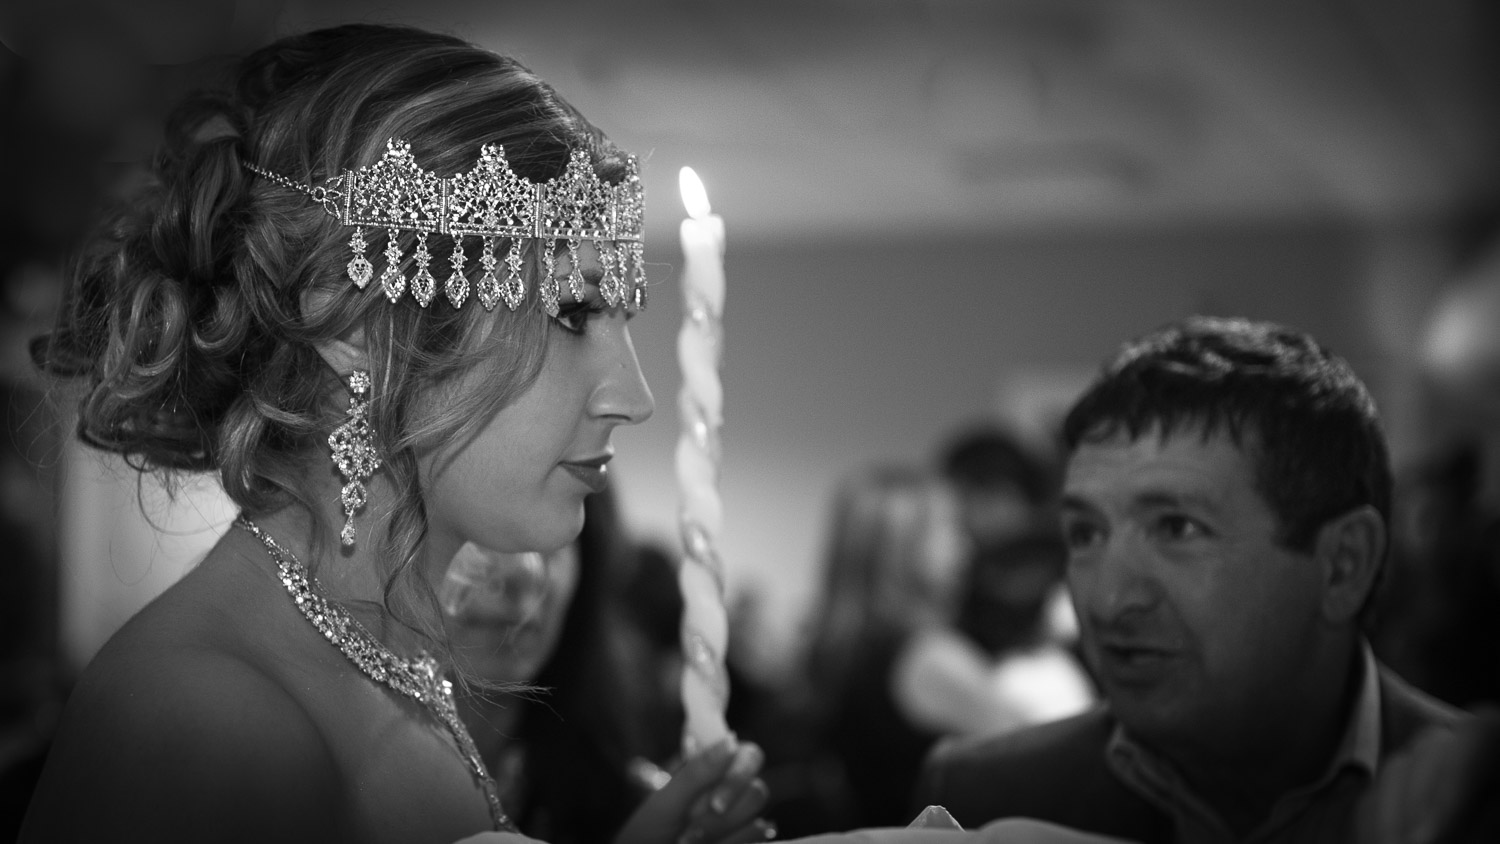 photographe mariage montpellier hd19